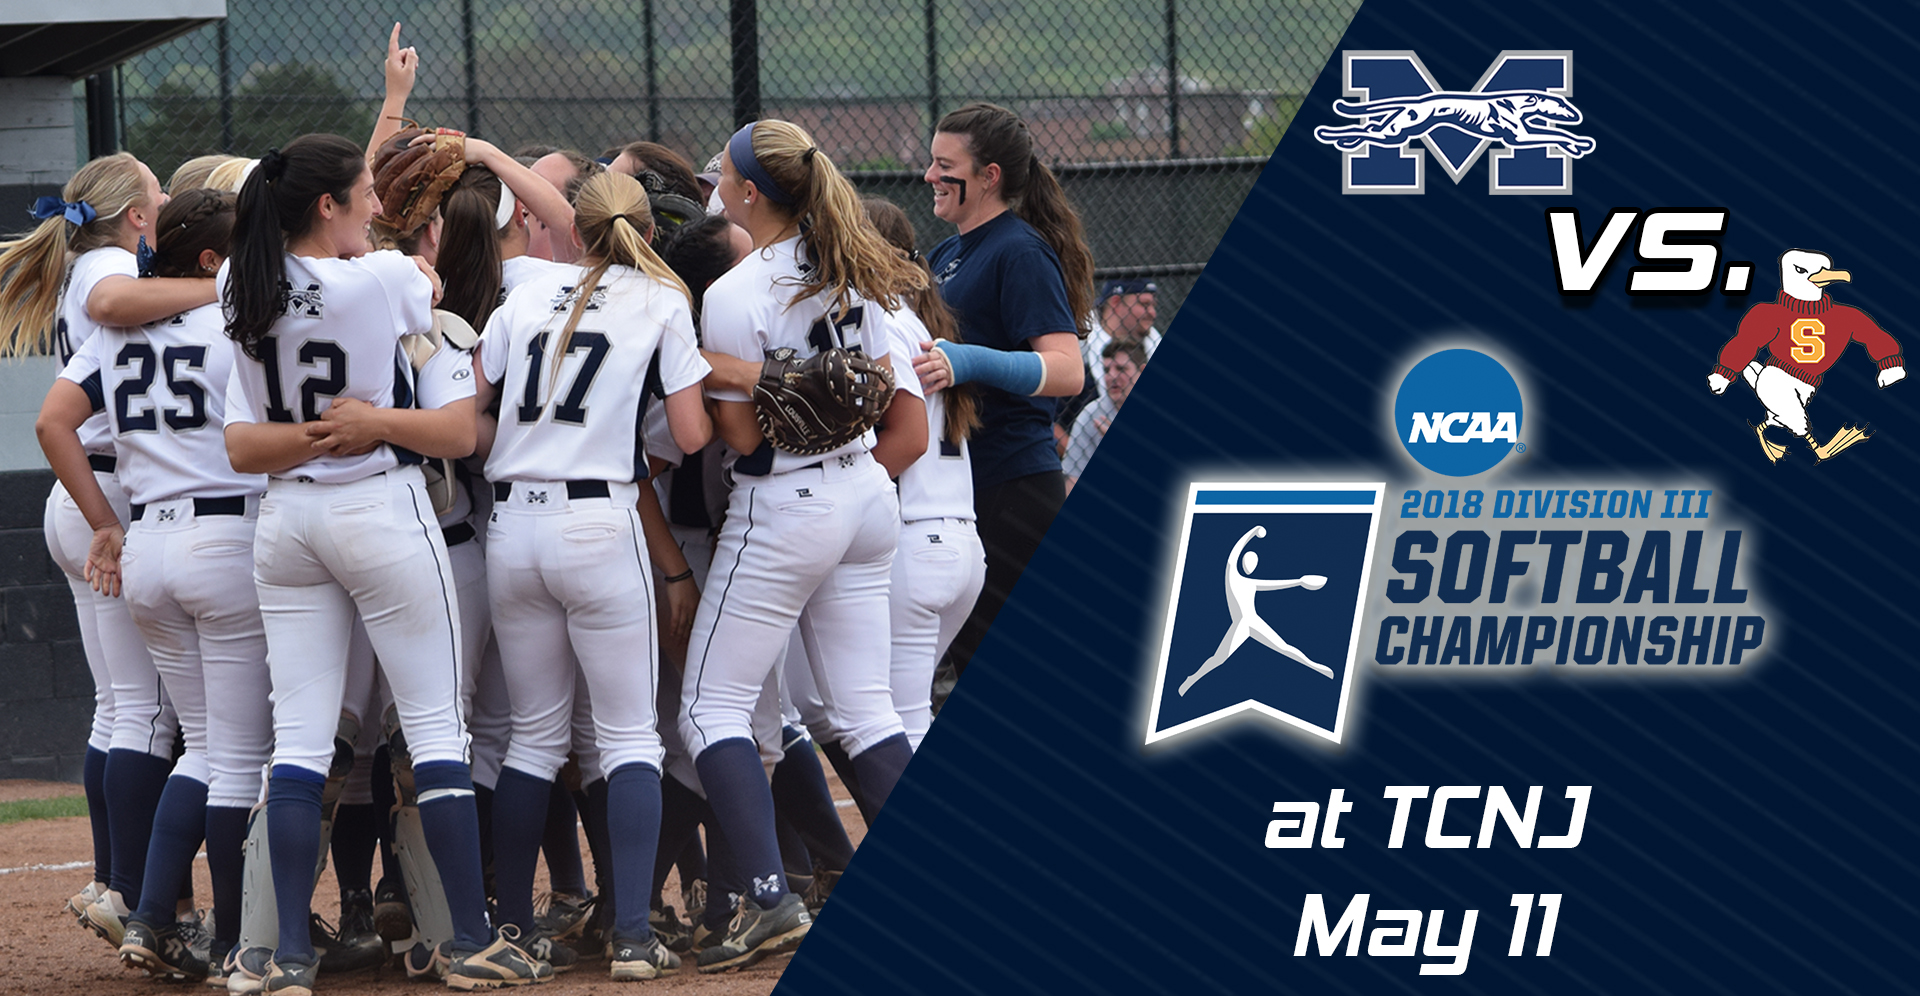 The softball team begins the 2018 NCAA DIII Regionals on Friday, May 11 versus Salisbury (Md.) University in Ewing, New Jersey.